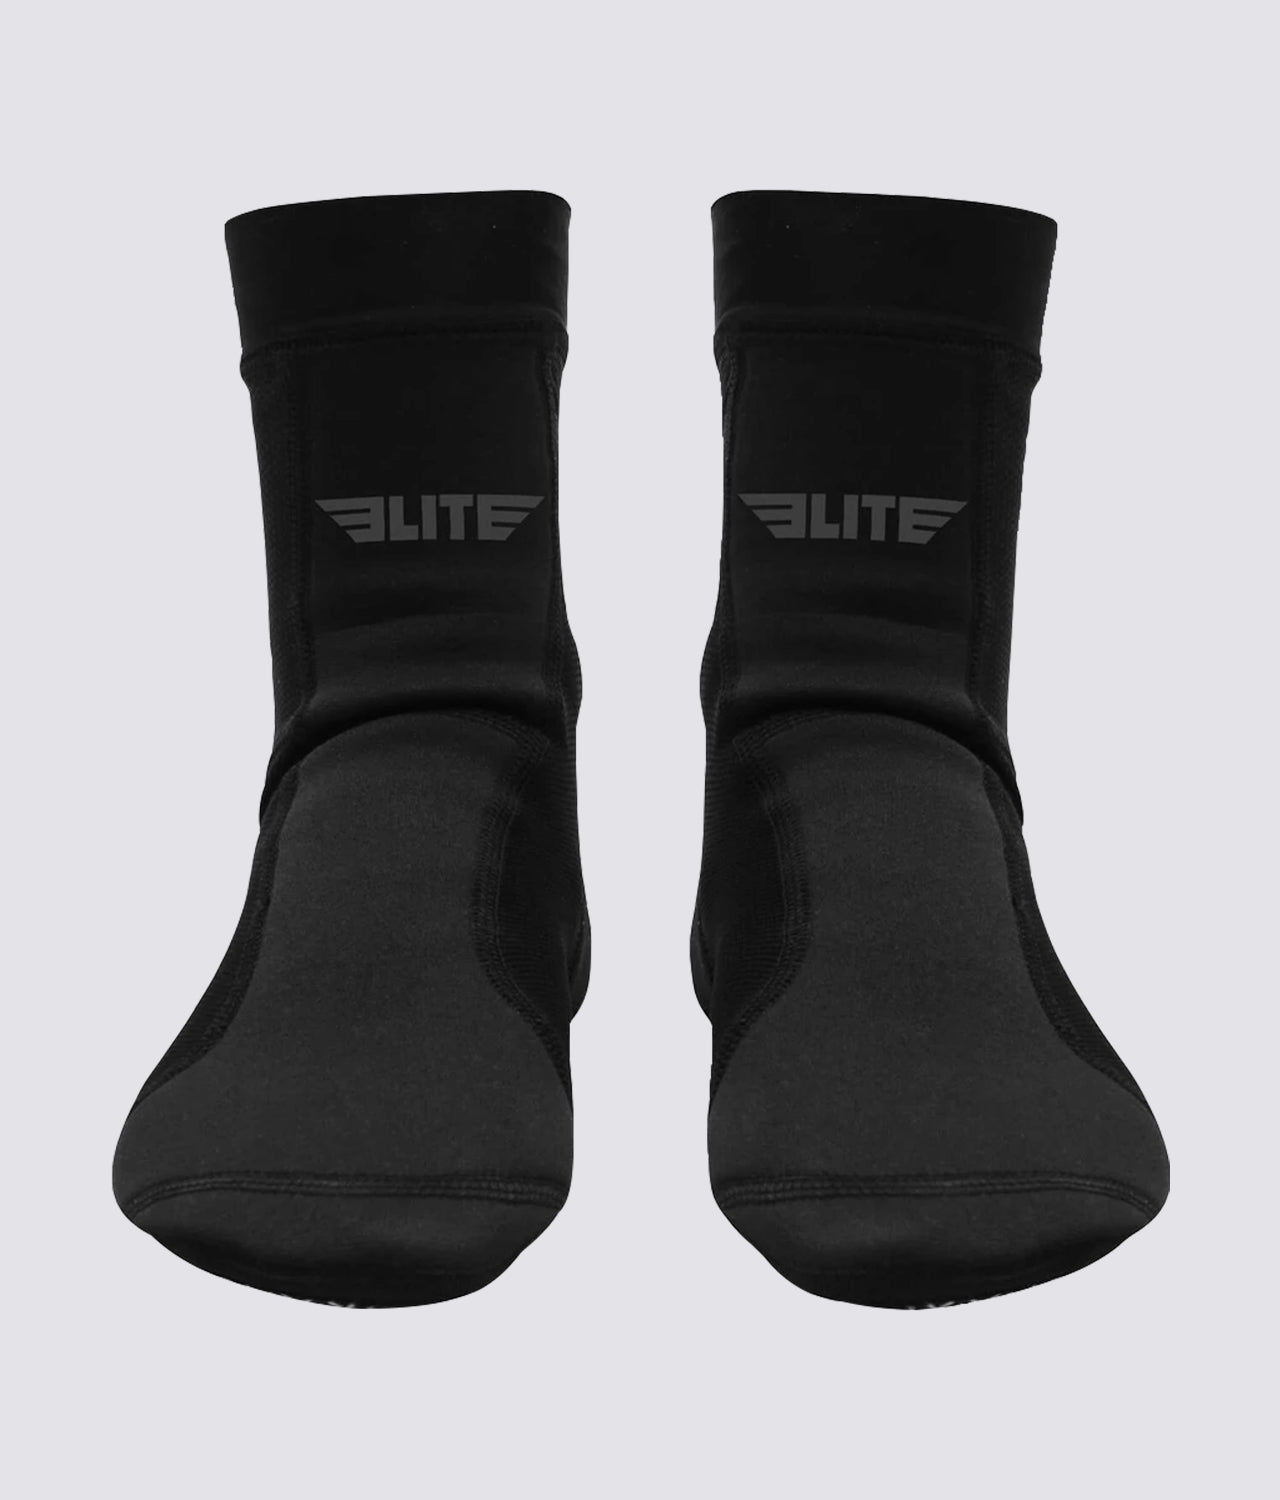 Elite Sports Anatomically Shaped Design Gray MMA Foot Grips